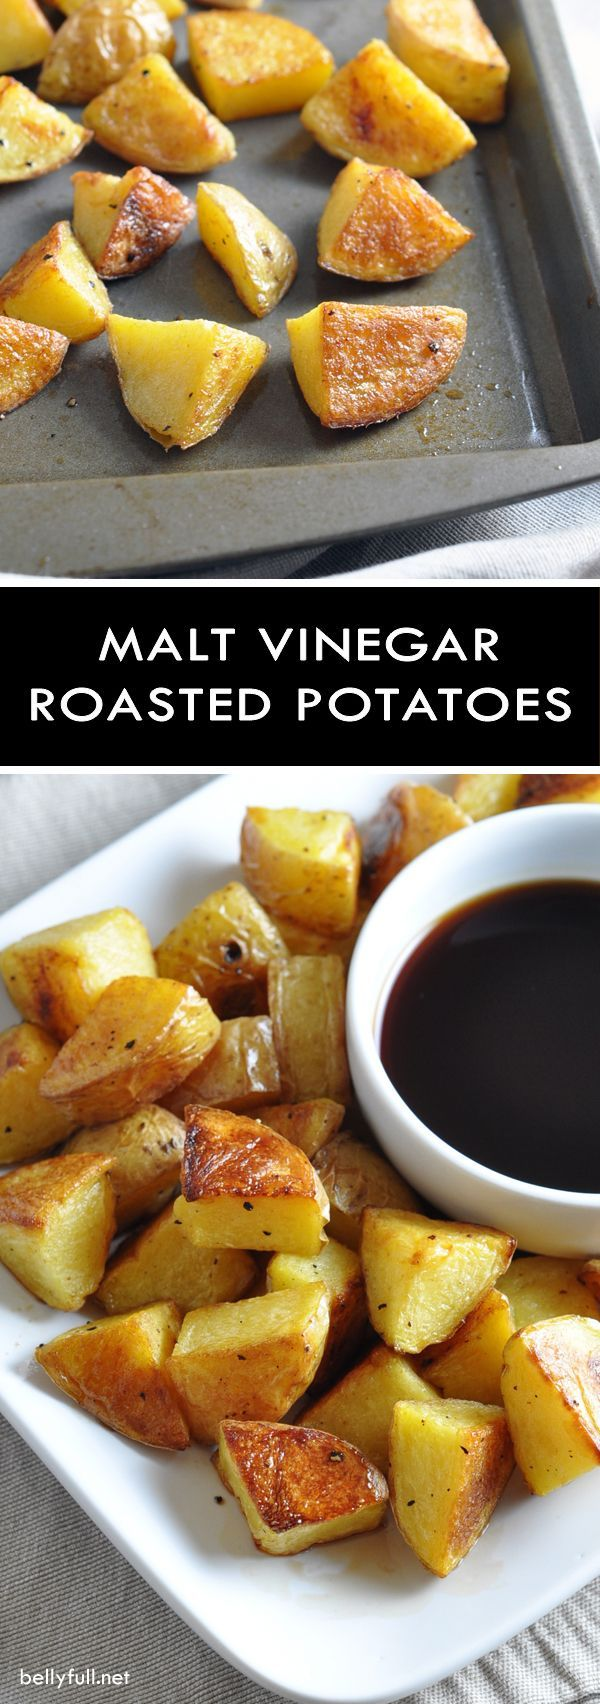 British pub salt and vinegar crisps get an American makeover with cubes of roasted potato and a syrupy malt vinegar sauce!